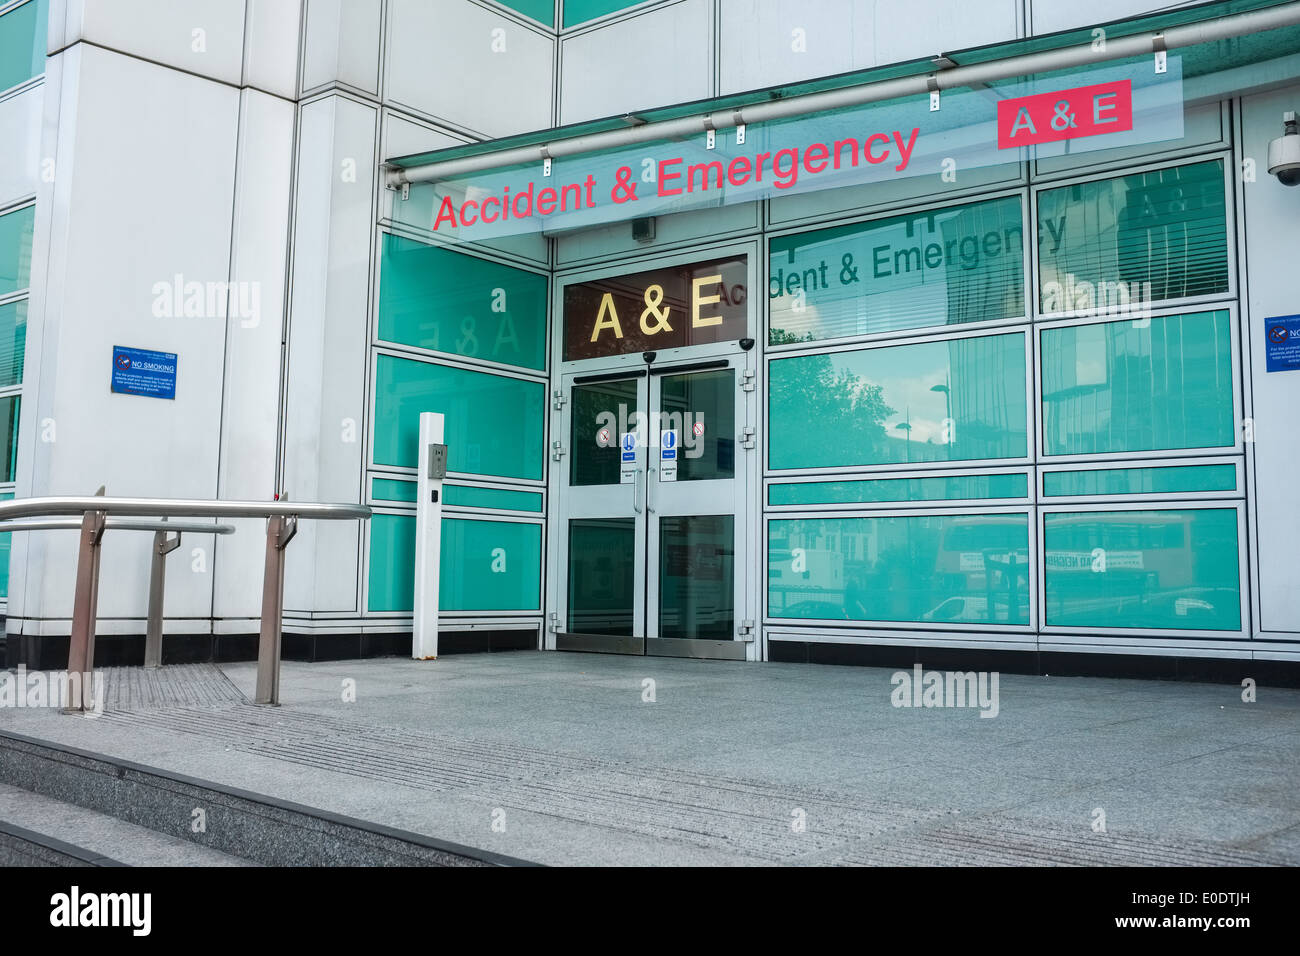 The entrance to university college hospital accident emergency the entrance to university college hospital accident emergency stock photo 69146185 alamy altavistaventures Choice Image